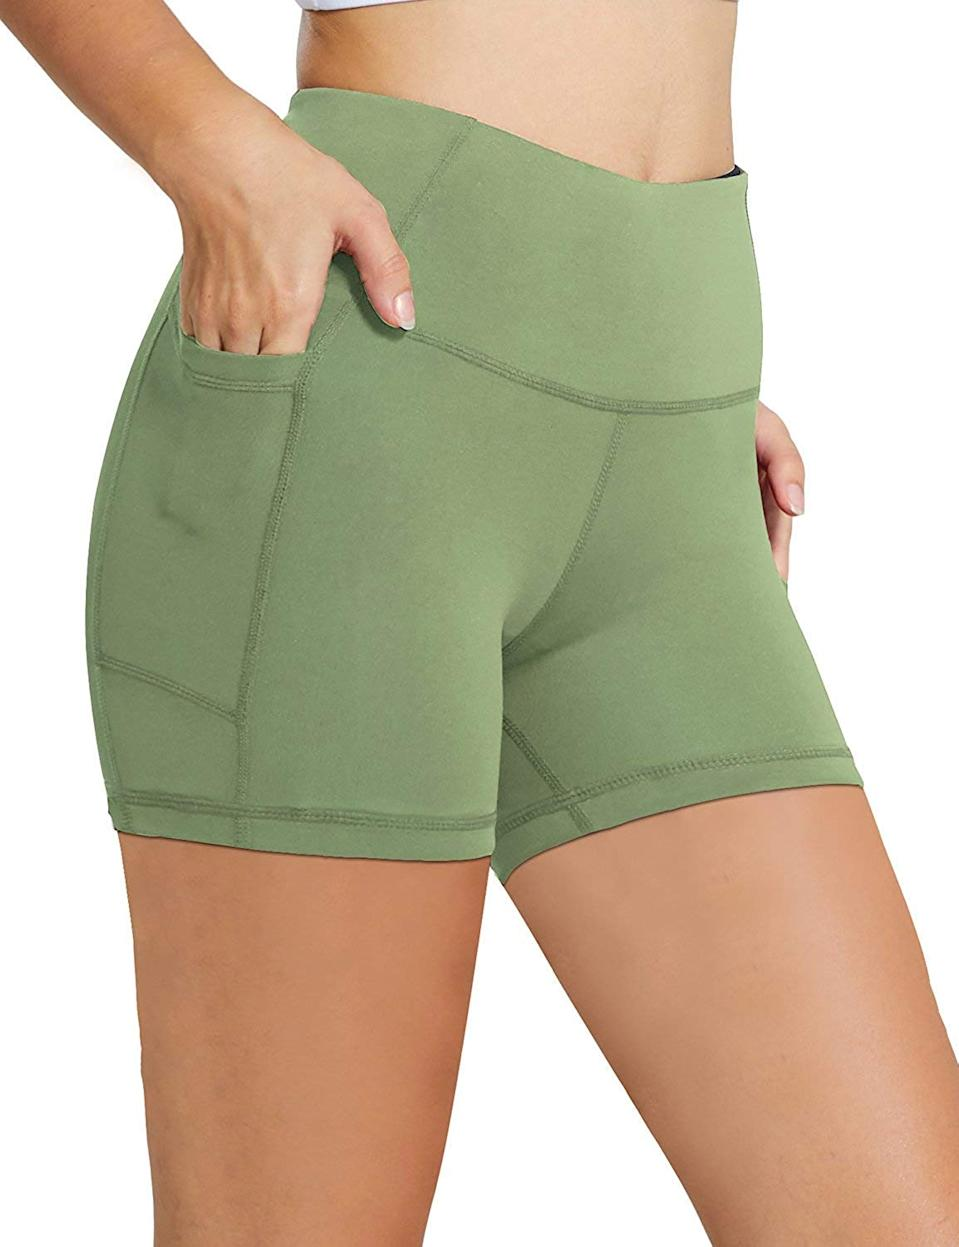 """<h3>Baleaf High-Waist Compression Shorts With Side Pockets </h3><br><br>Looking for even tinier, top-rated pair of leggings with deep pockets? Look no further than this #1 Best Seller compression short from Amazon that boasts close to 2,000 reviews and 4.3 out of 5 stars.<br><br>The customer hype says it all: """"The pocket fit my iPhone 7 in its case and held it firmly against my upper outer thigh so there wasn't bouncing around and I didn't get chaffed. There was also a hidden pocket at the waist that could actually hold a key with fob, not just a single key. Again, HOORAY and why don't more makers of activewear think of this? How many people just run out the door with NOTHING when they go run, walk or bike? I am 5'6"""" and wear a size 8 comfortably and the medium fit the way I wanted. It felt supportive and snug but nothing was tight. I am a runner and appreciate that the legs of the shorts didn't ride up as I ran. Fabric was a good thickness, not at all see through. I am a fan!""""<br><br><strong>Baleaf</strong> 5"""" High Waist Compression Shorts With Side Pockets, $, available at <a href=""""https://www.amazon.com/BALEAF-Workout-Control-Running-Pockets/dp/B07TXP4DF9/ref=sr_1_59_sspa"""" rel=""""nofollow noopener"""" target=""""_blank"""" data-ylk=""""slk:Amazon"""" class=""""link rapid-noclick-resp"""">Amazon</a>"""